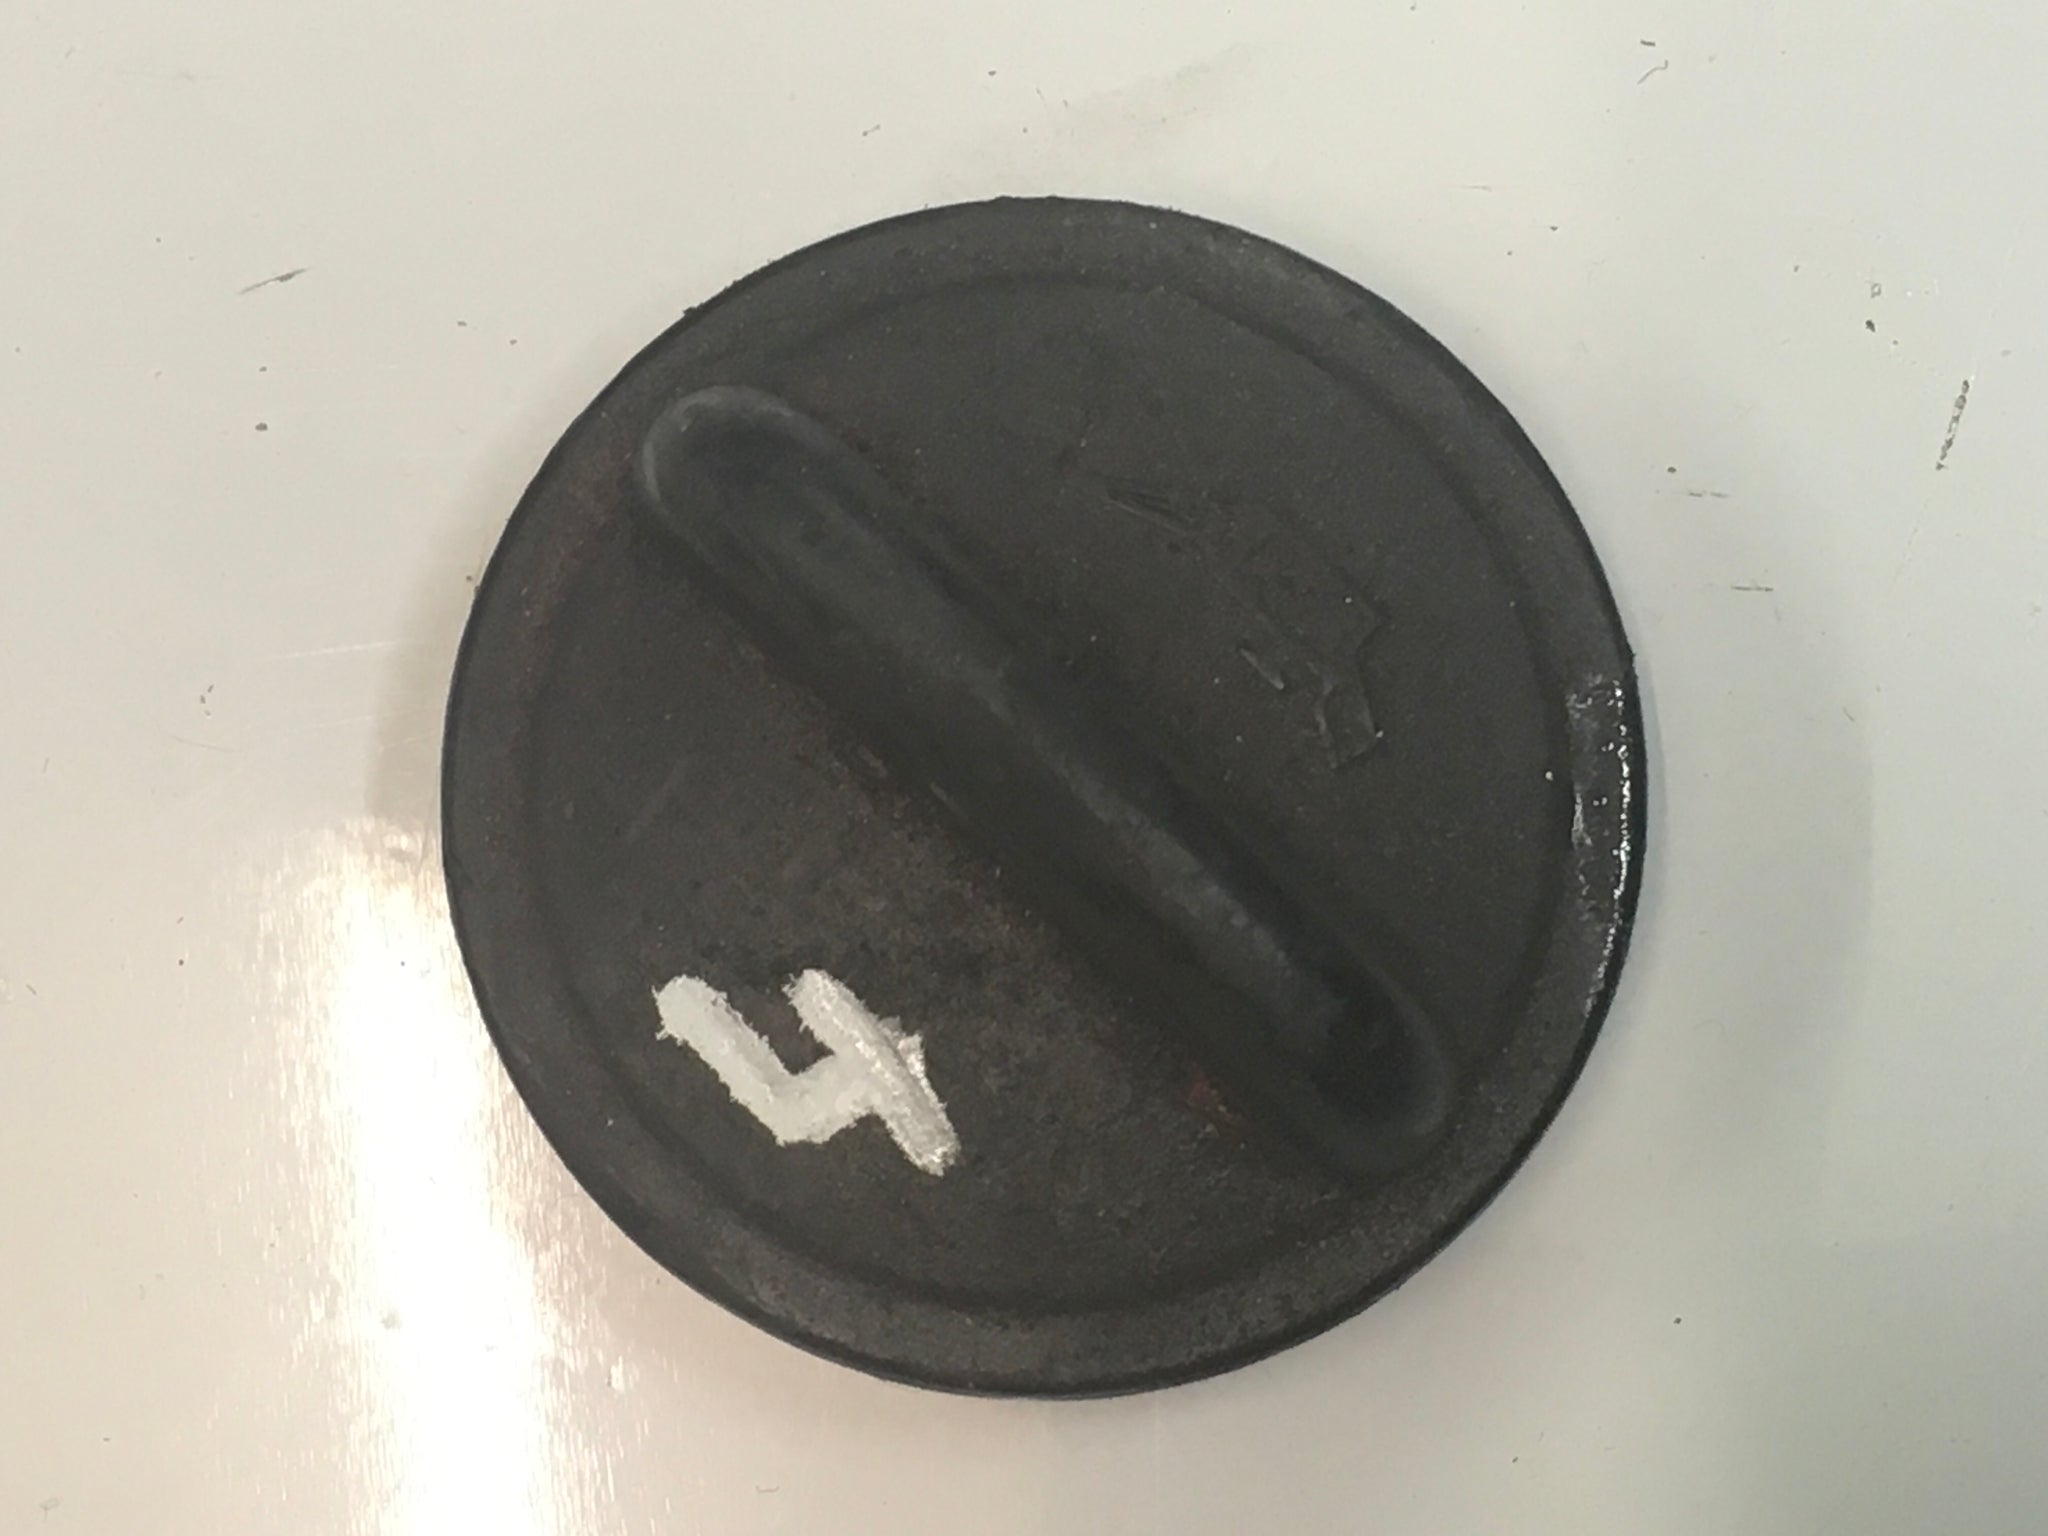 Porsche 924 2.0 oil filler cap 026 103 485 ((CB43)) - Porsche Spares UK Ltd